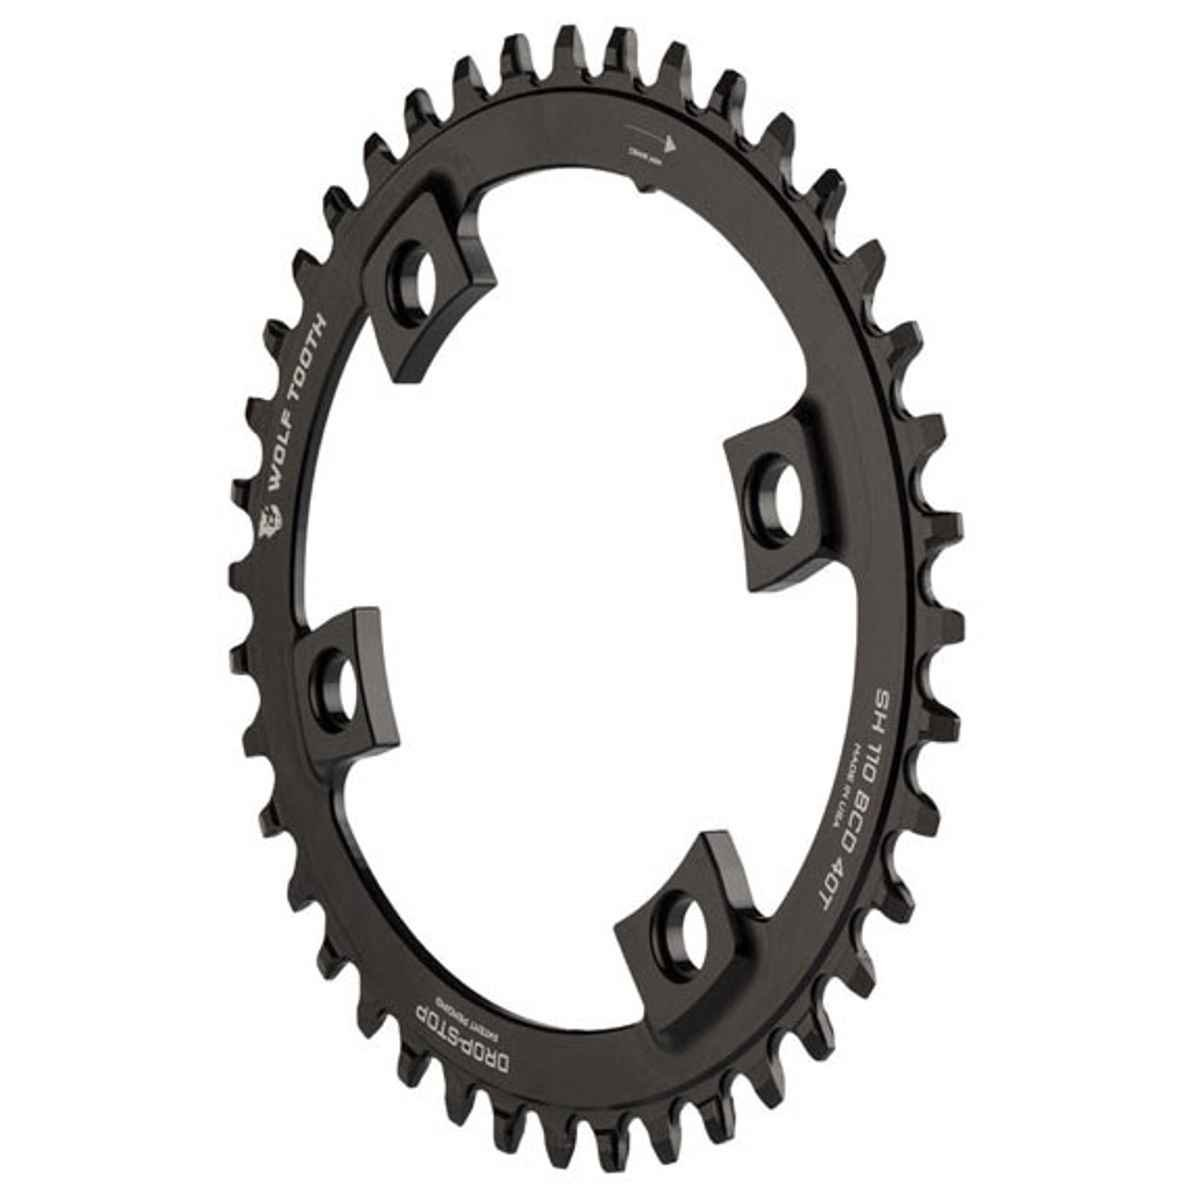 Wolf Tooth Components drop-stop Elliptical Chainring : 38t X Shimano非対称110 BCD、for Shimano非対称4-arm B01BULOKJE